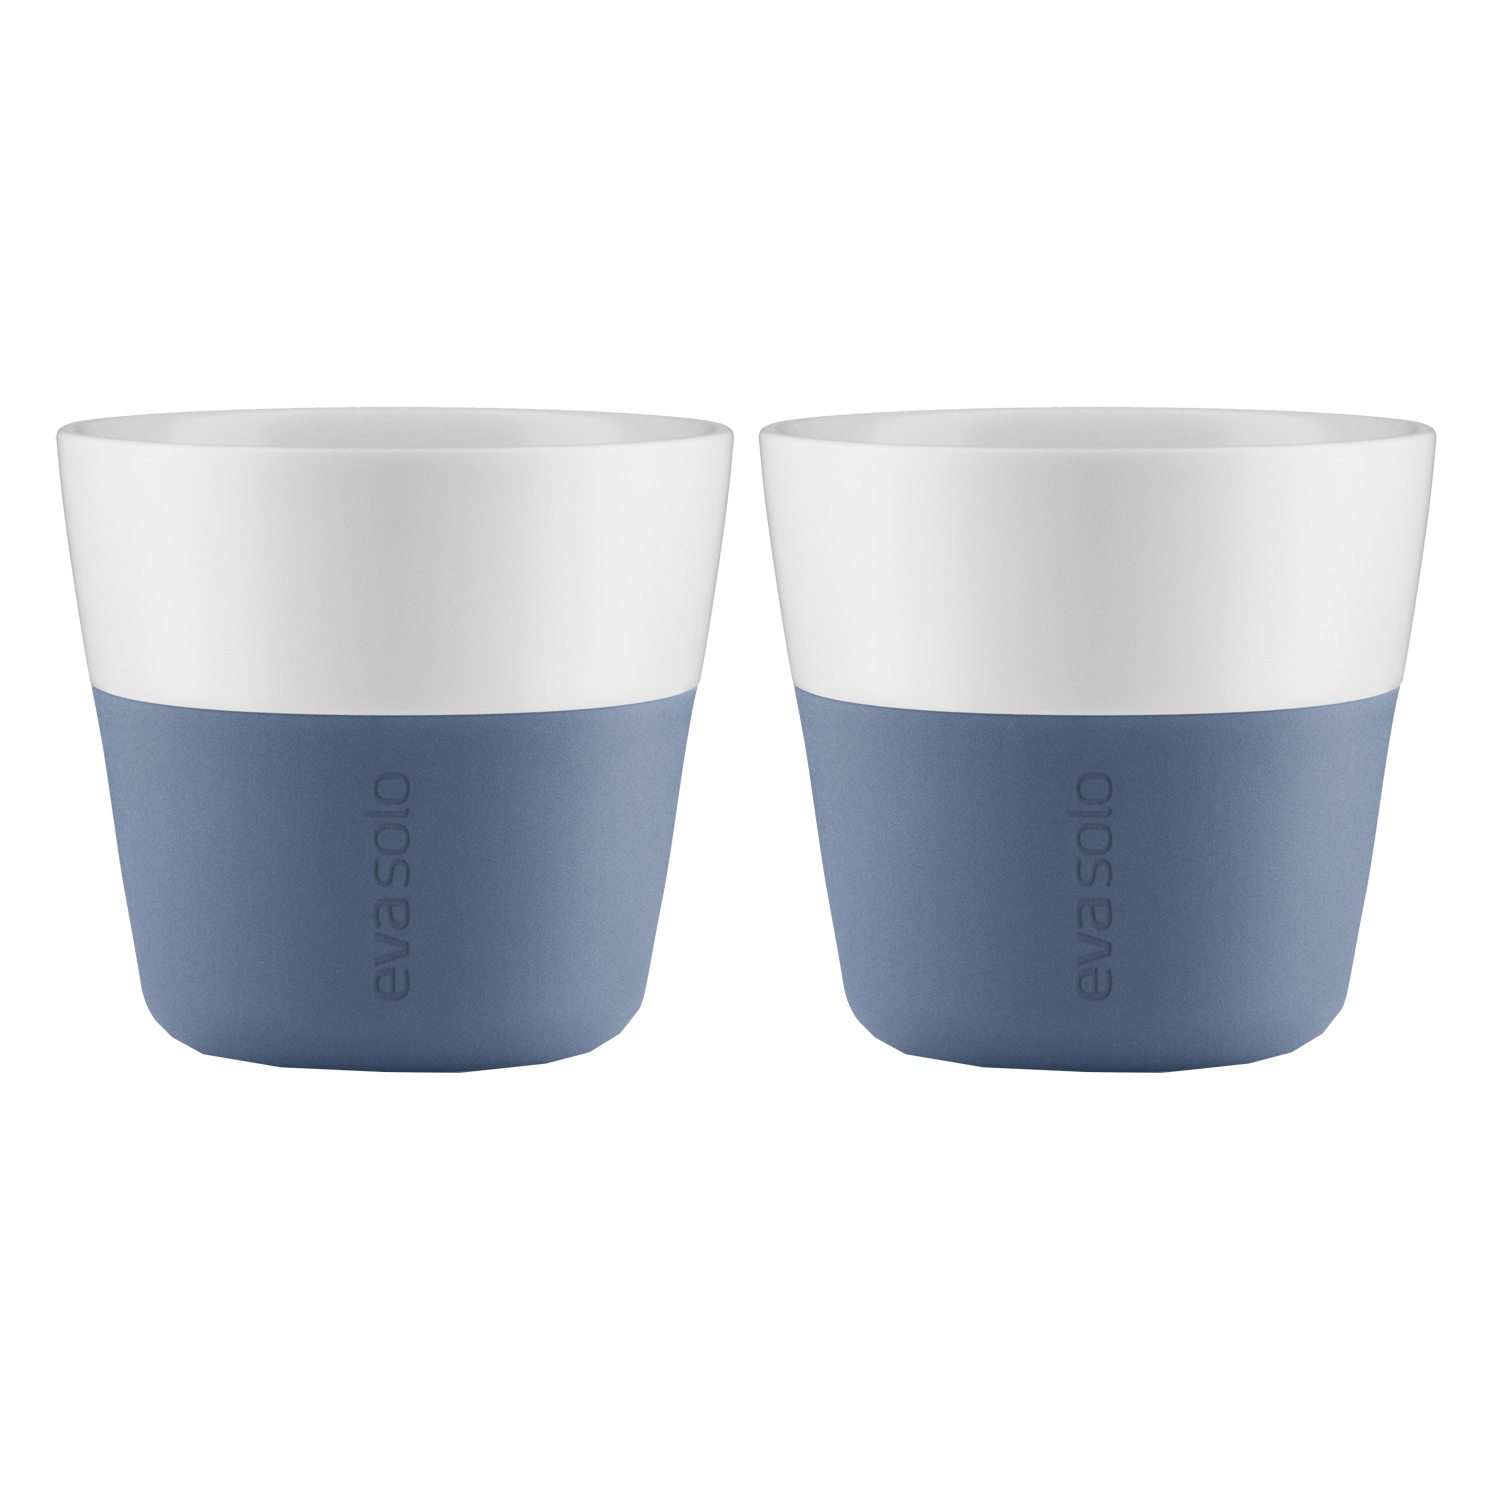 Lungo mugg 2-pack, moonlight blå